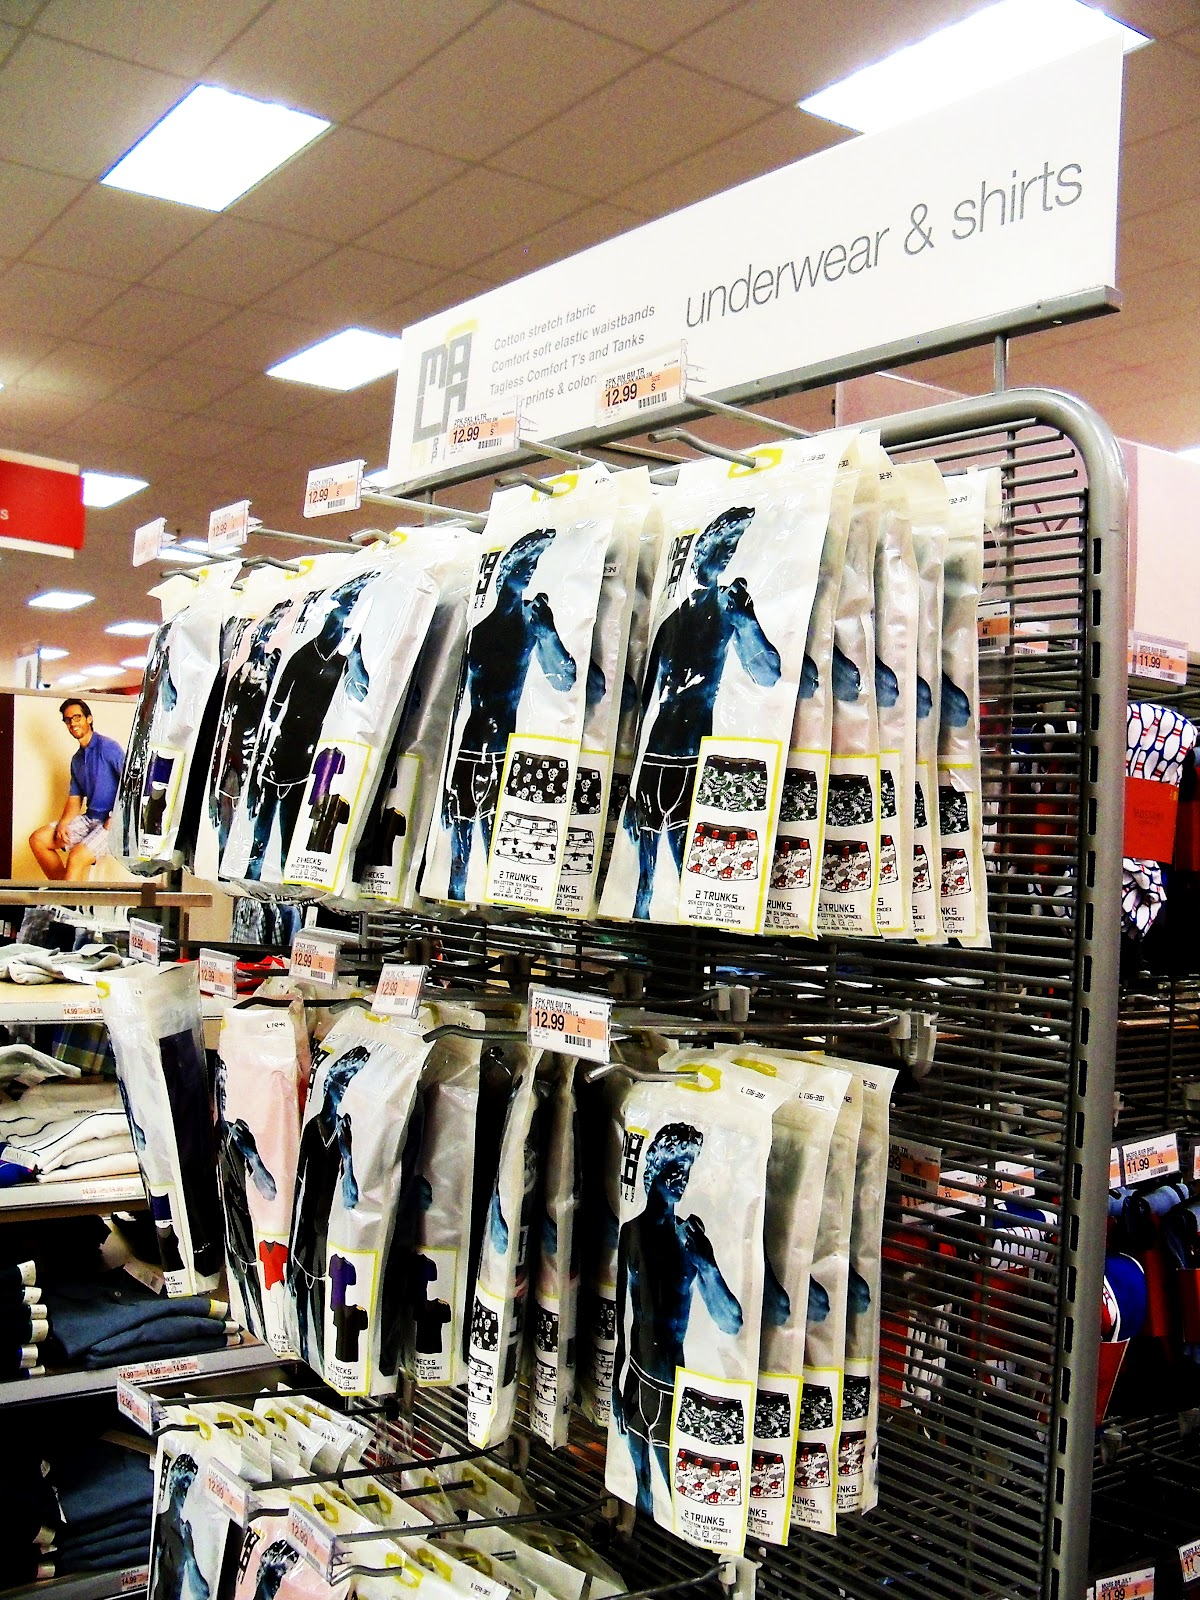 For hubby we found the Mario Lopez MaLo Underwear right away in the Men s  Fashion section of the store. They had this nice end cap display and there  was a ... bf283dde892d